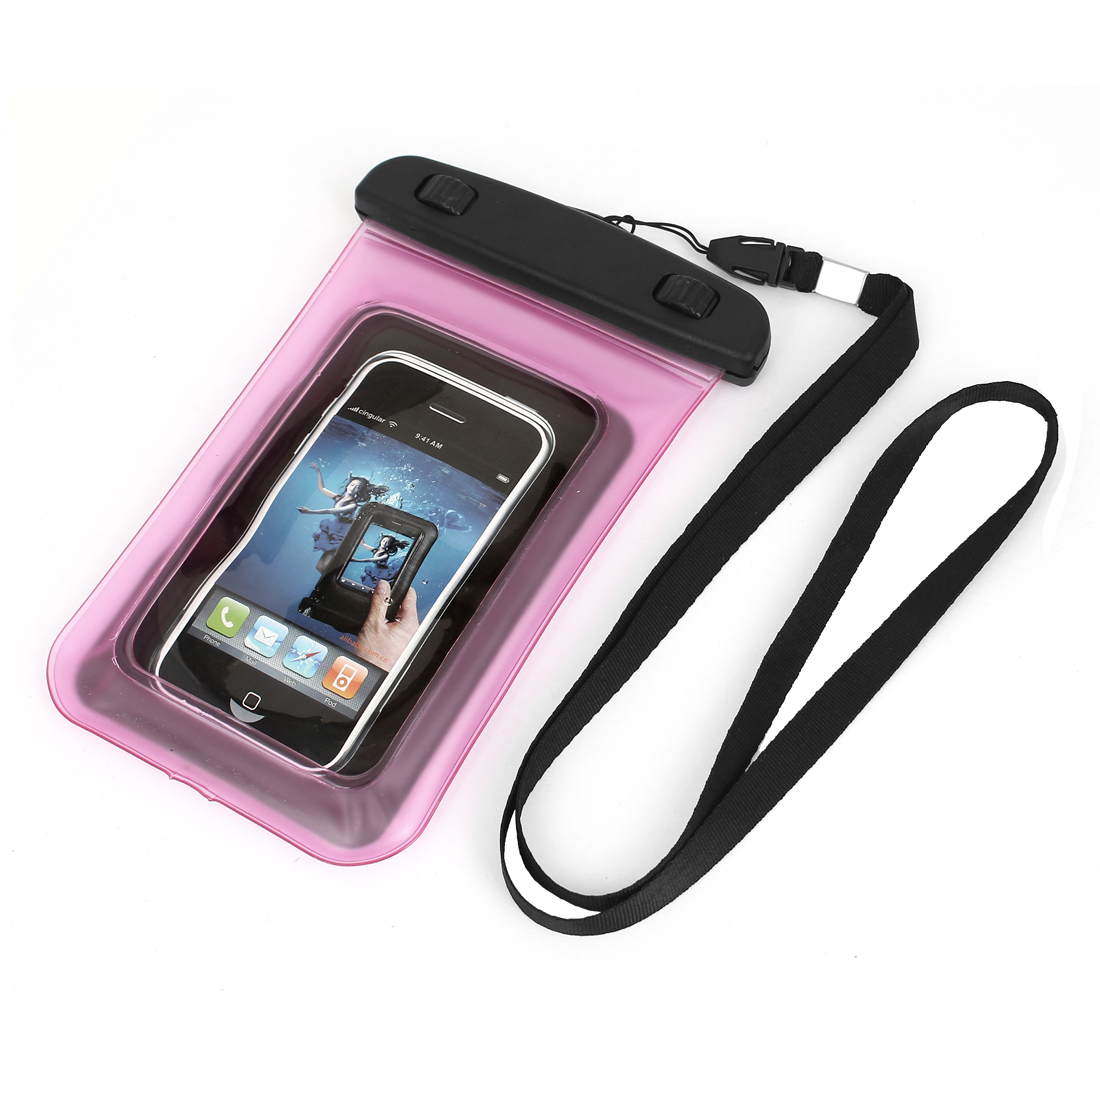 Unique Bargains Transparent Guard Pouch Waterproof Bag Dry Cover Case Pink for 4  Mobile Phone